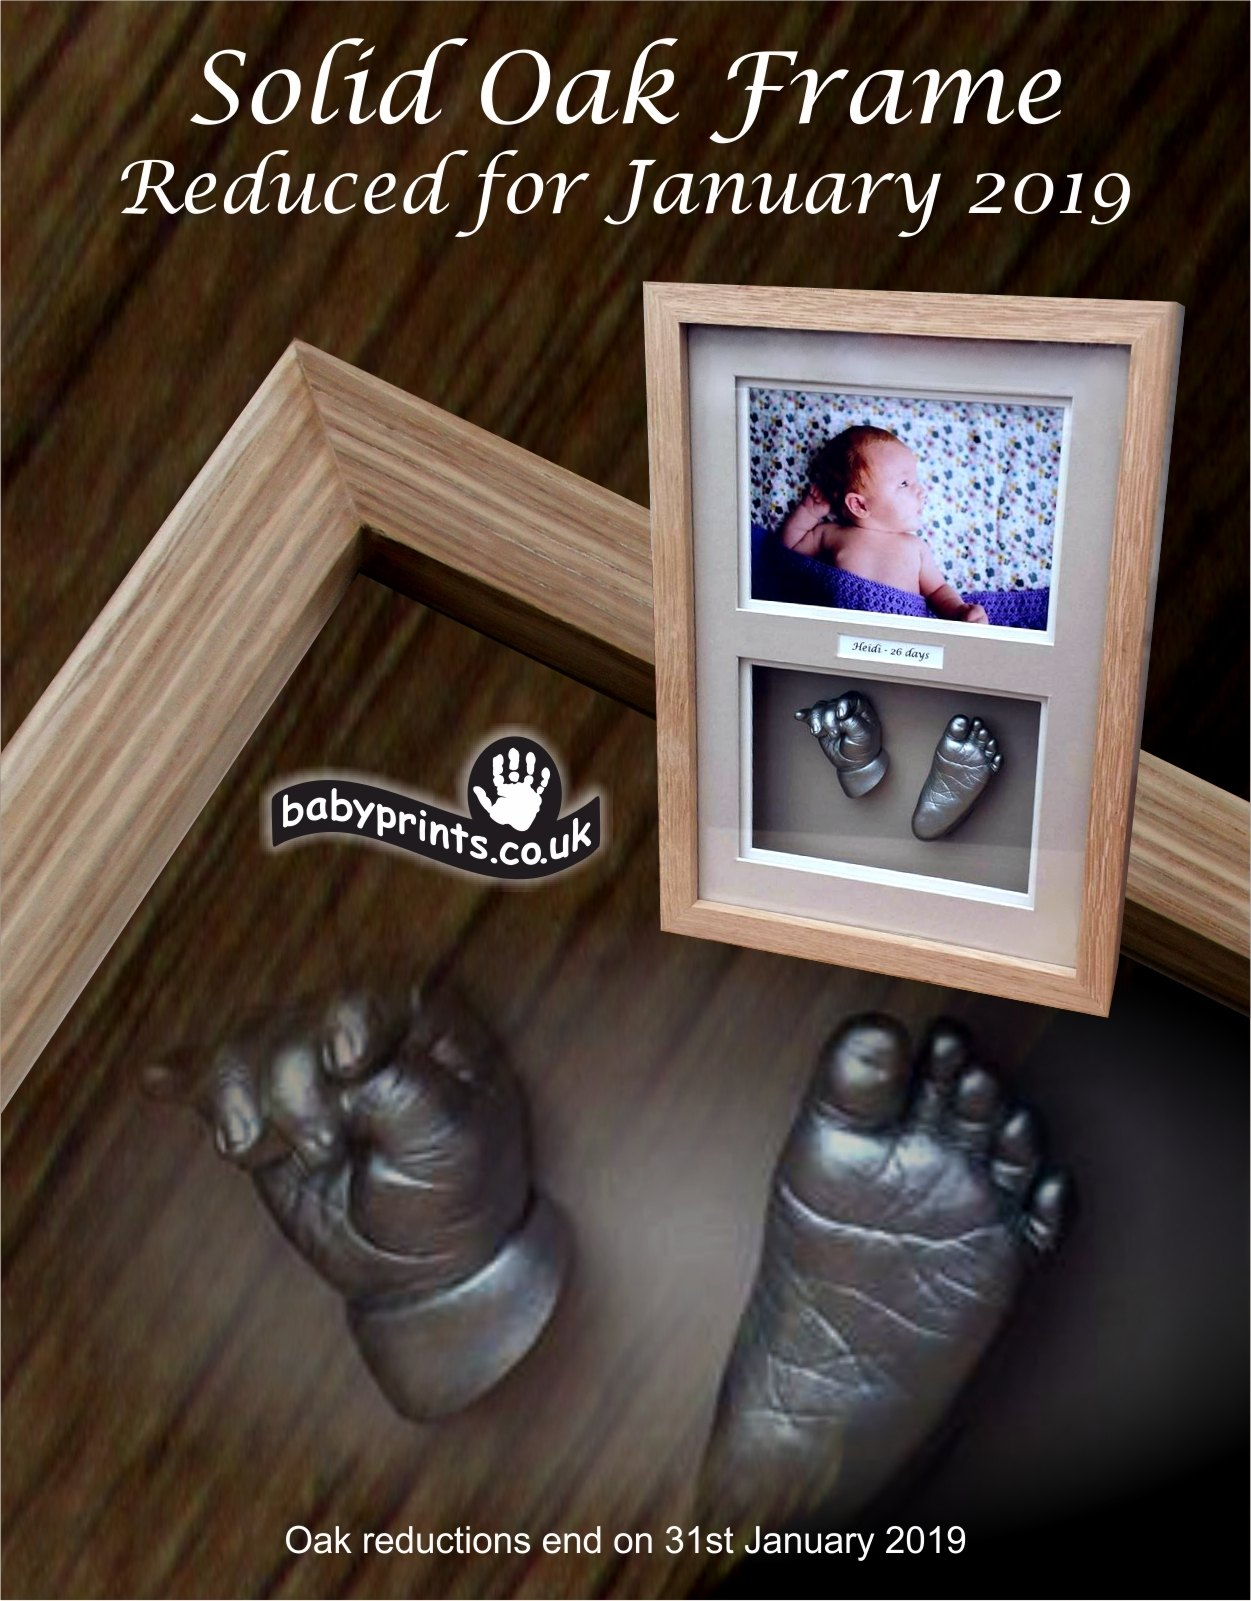 Life casts and Oak frame offer January 2019